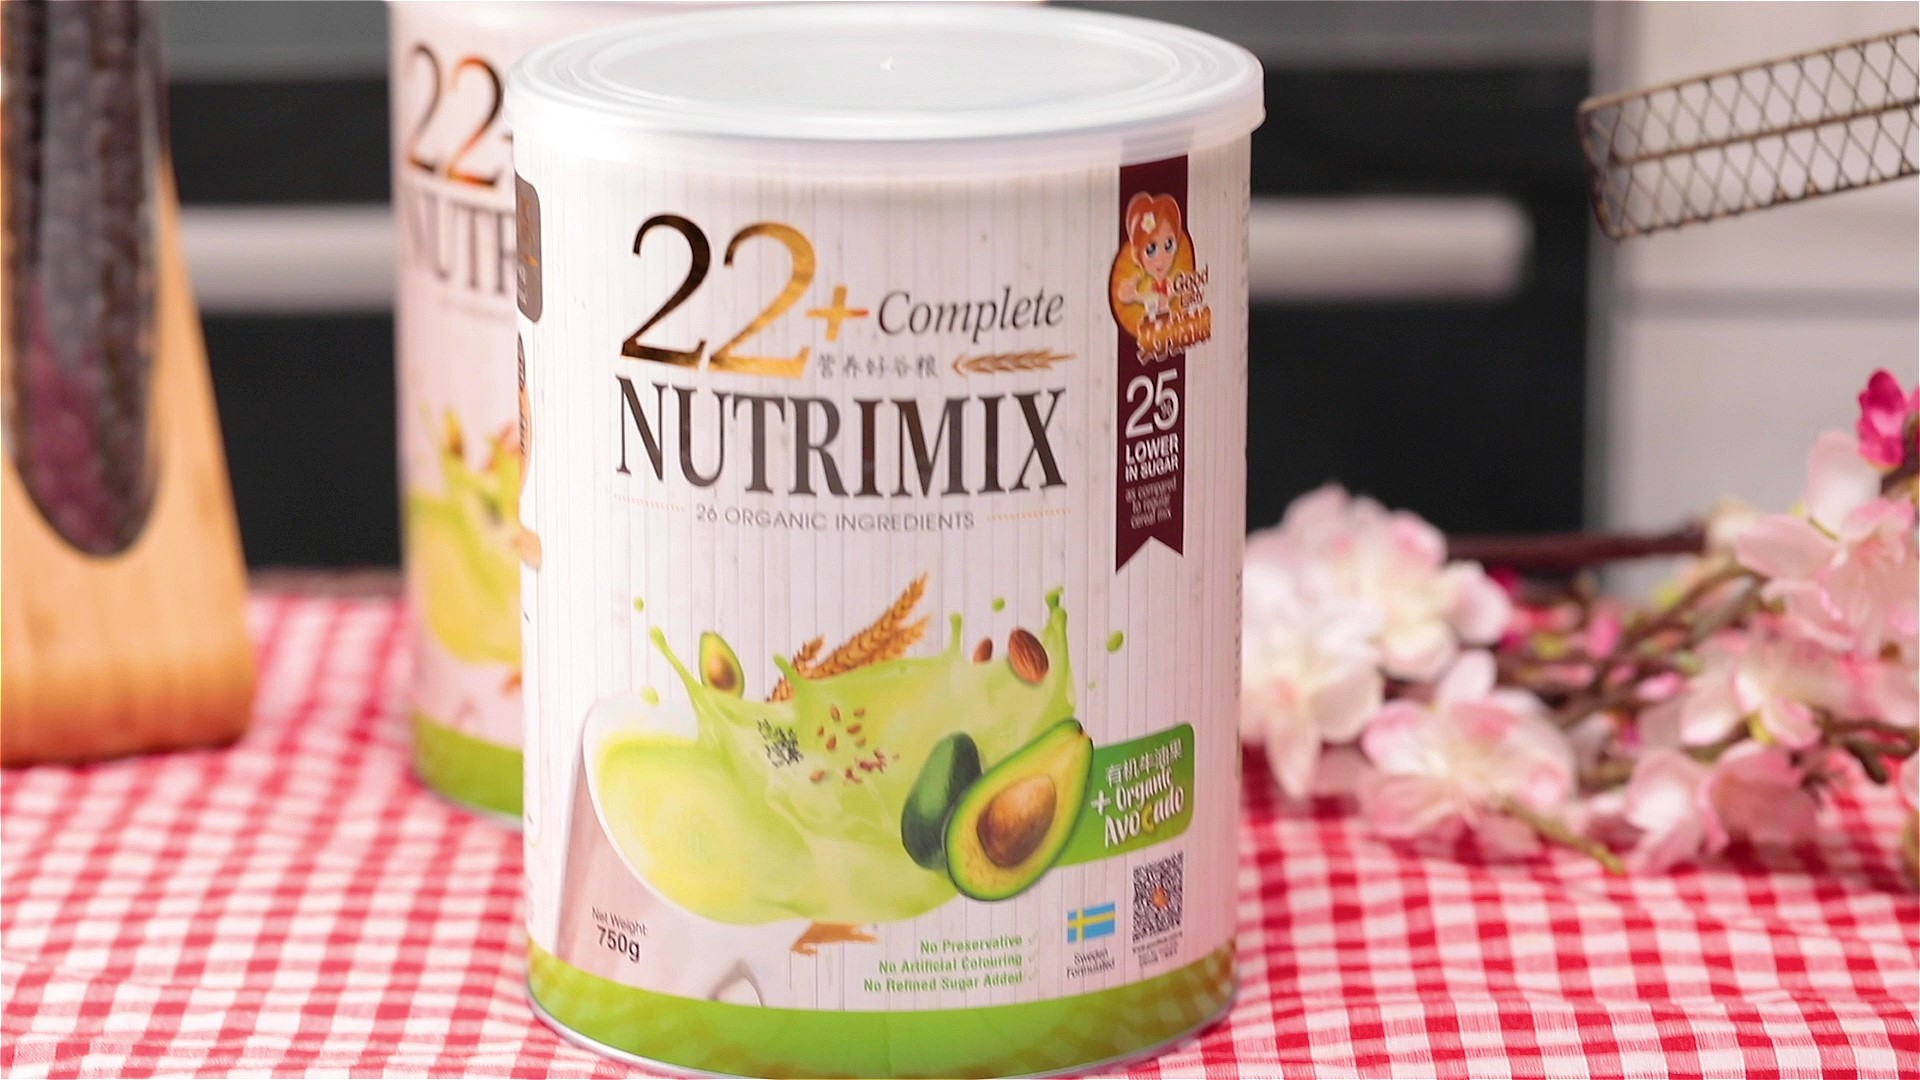 Nutrimix Avocado Powder